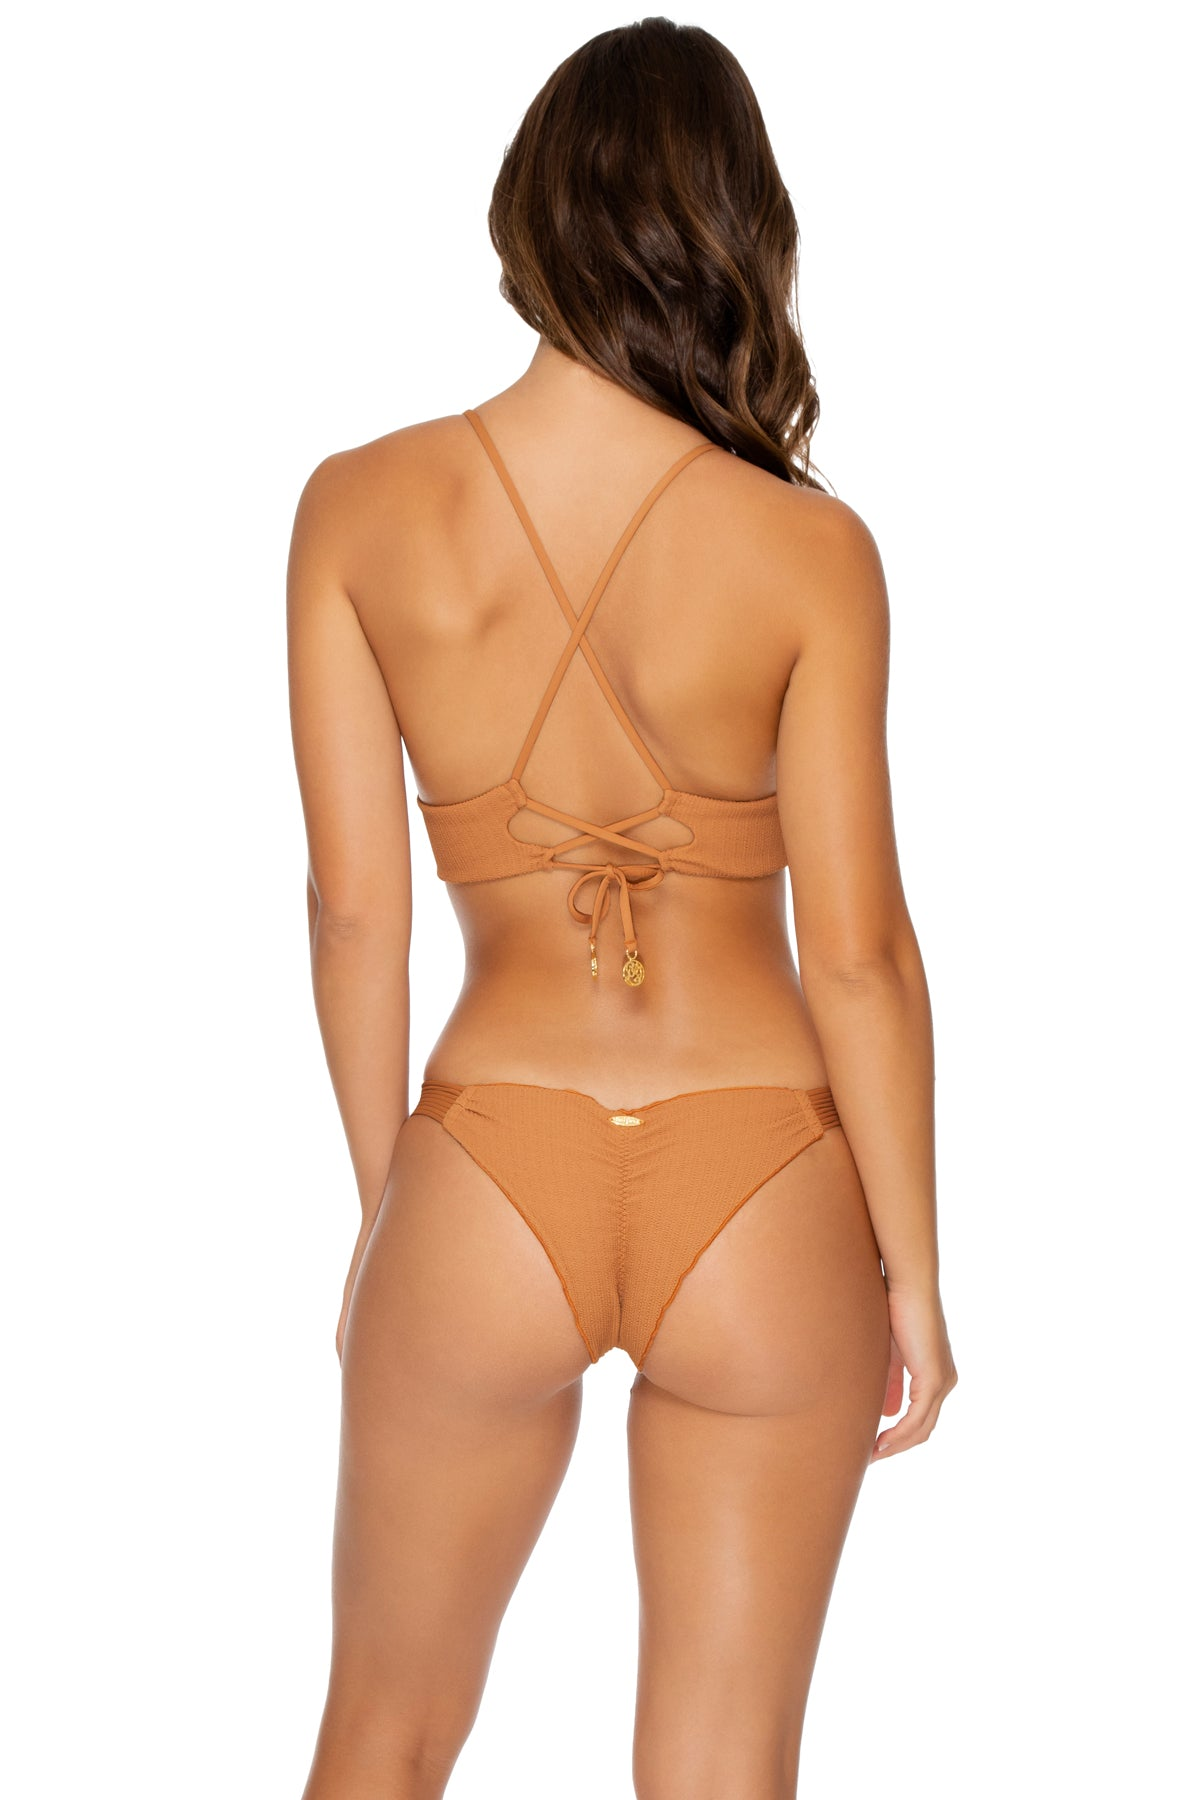 JAGGED BOMBSHELL - Halter Cross Back Bustier Top & Strappy Brazilian Ruched Back Bottom • Caramelo